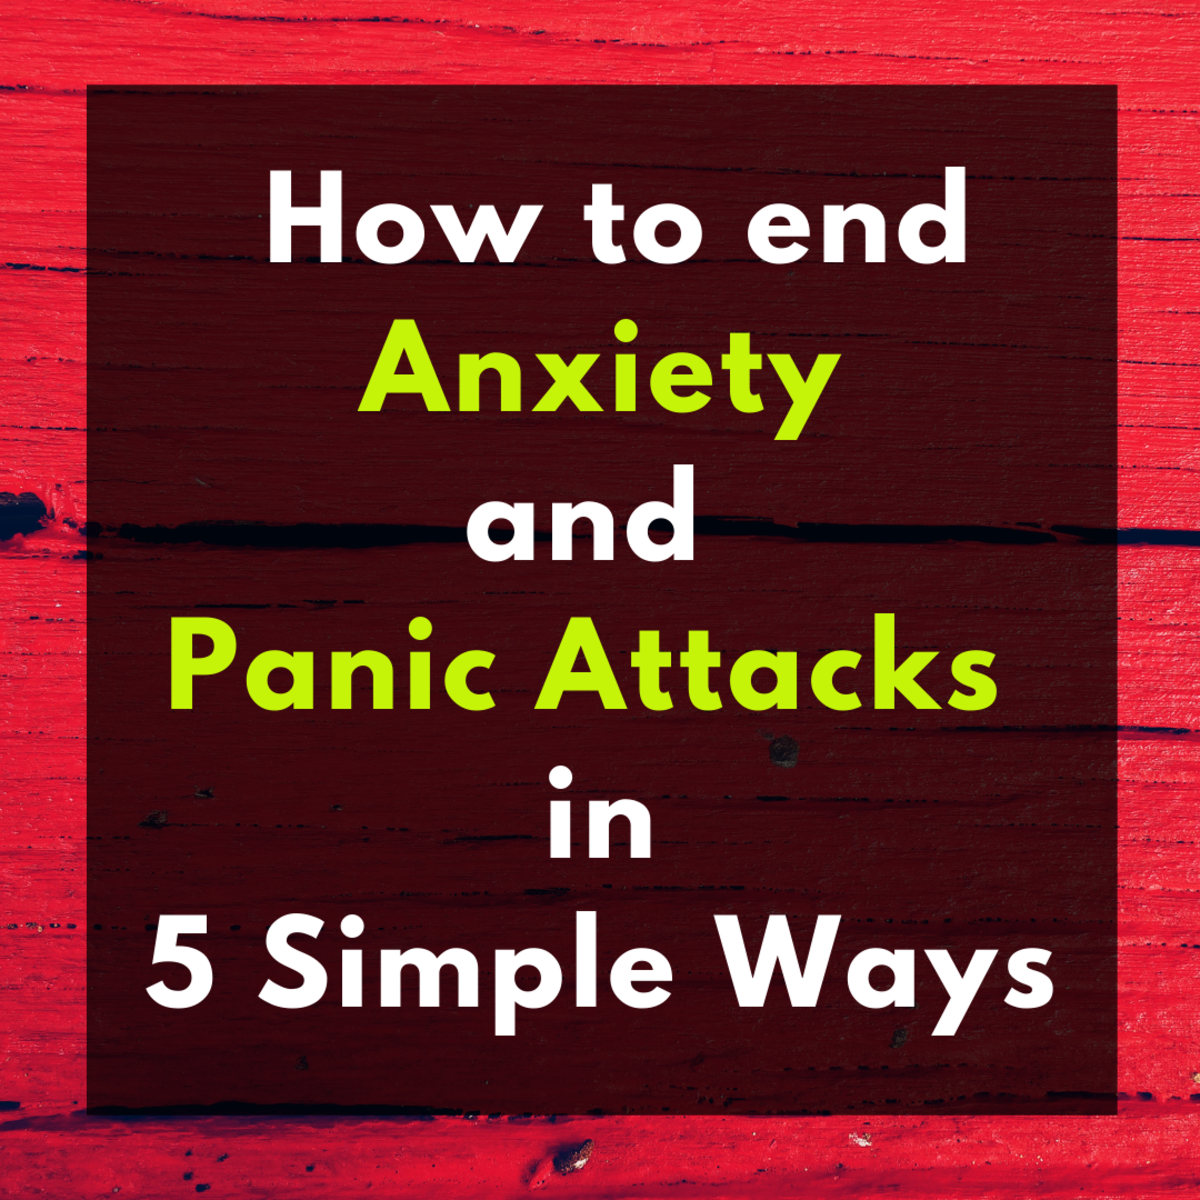 How to End Anxiety and Panic Attacks in 5 Simple Ways